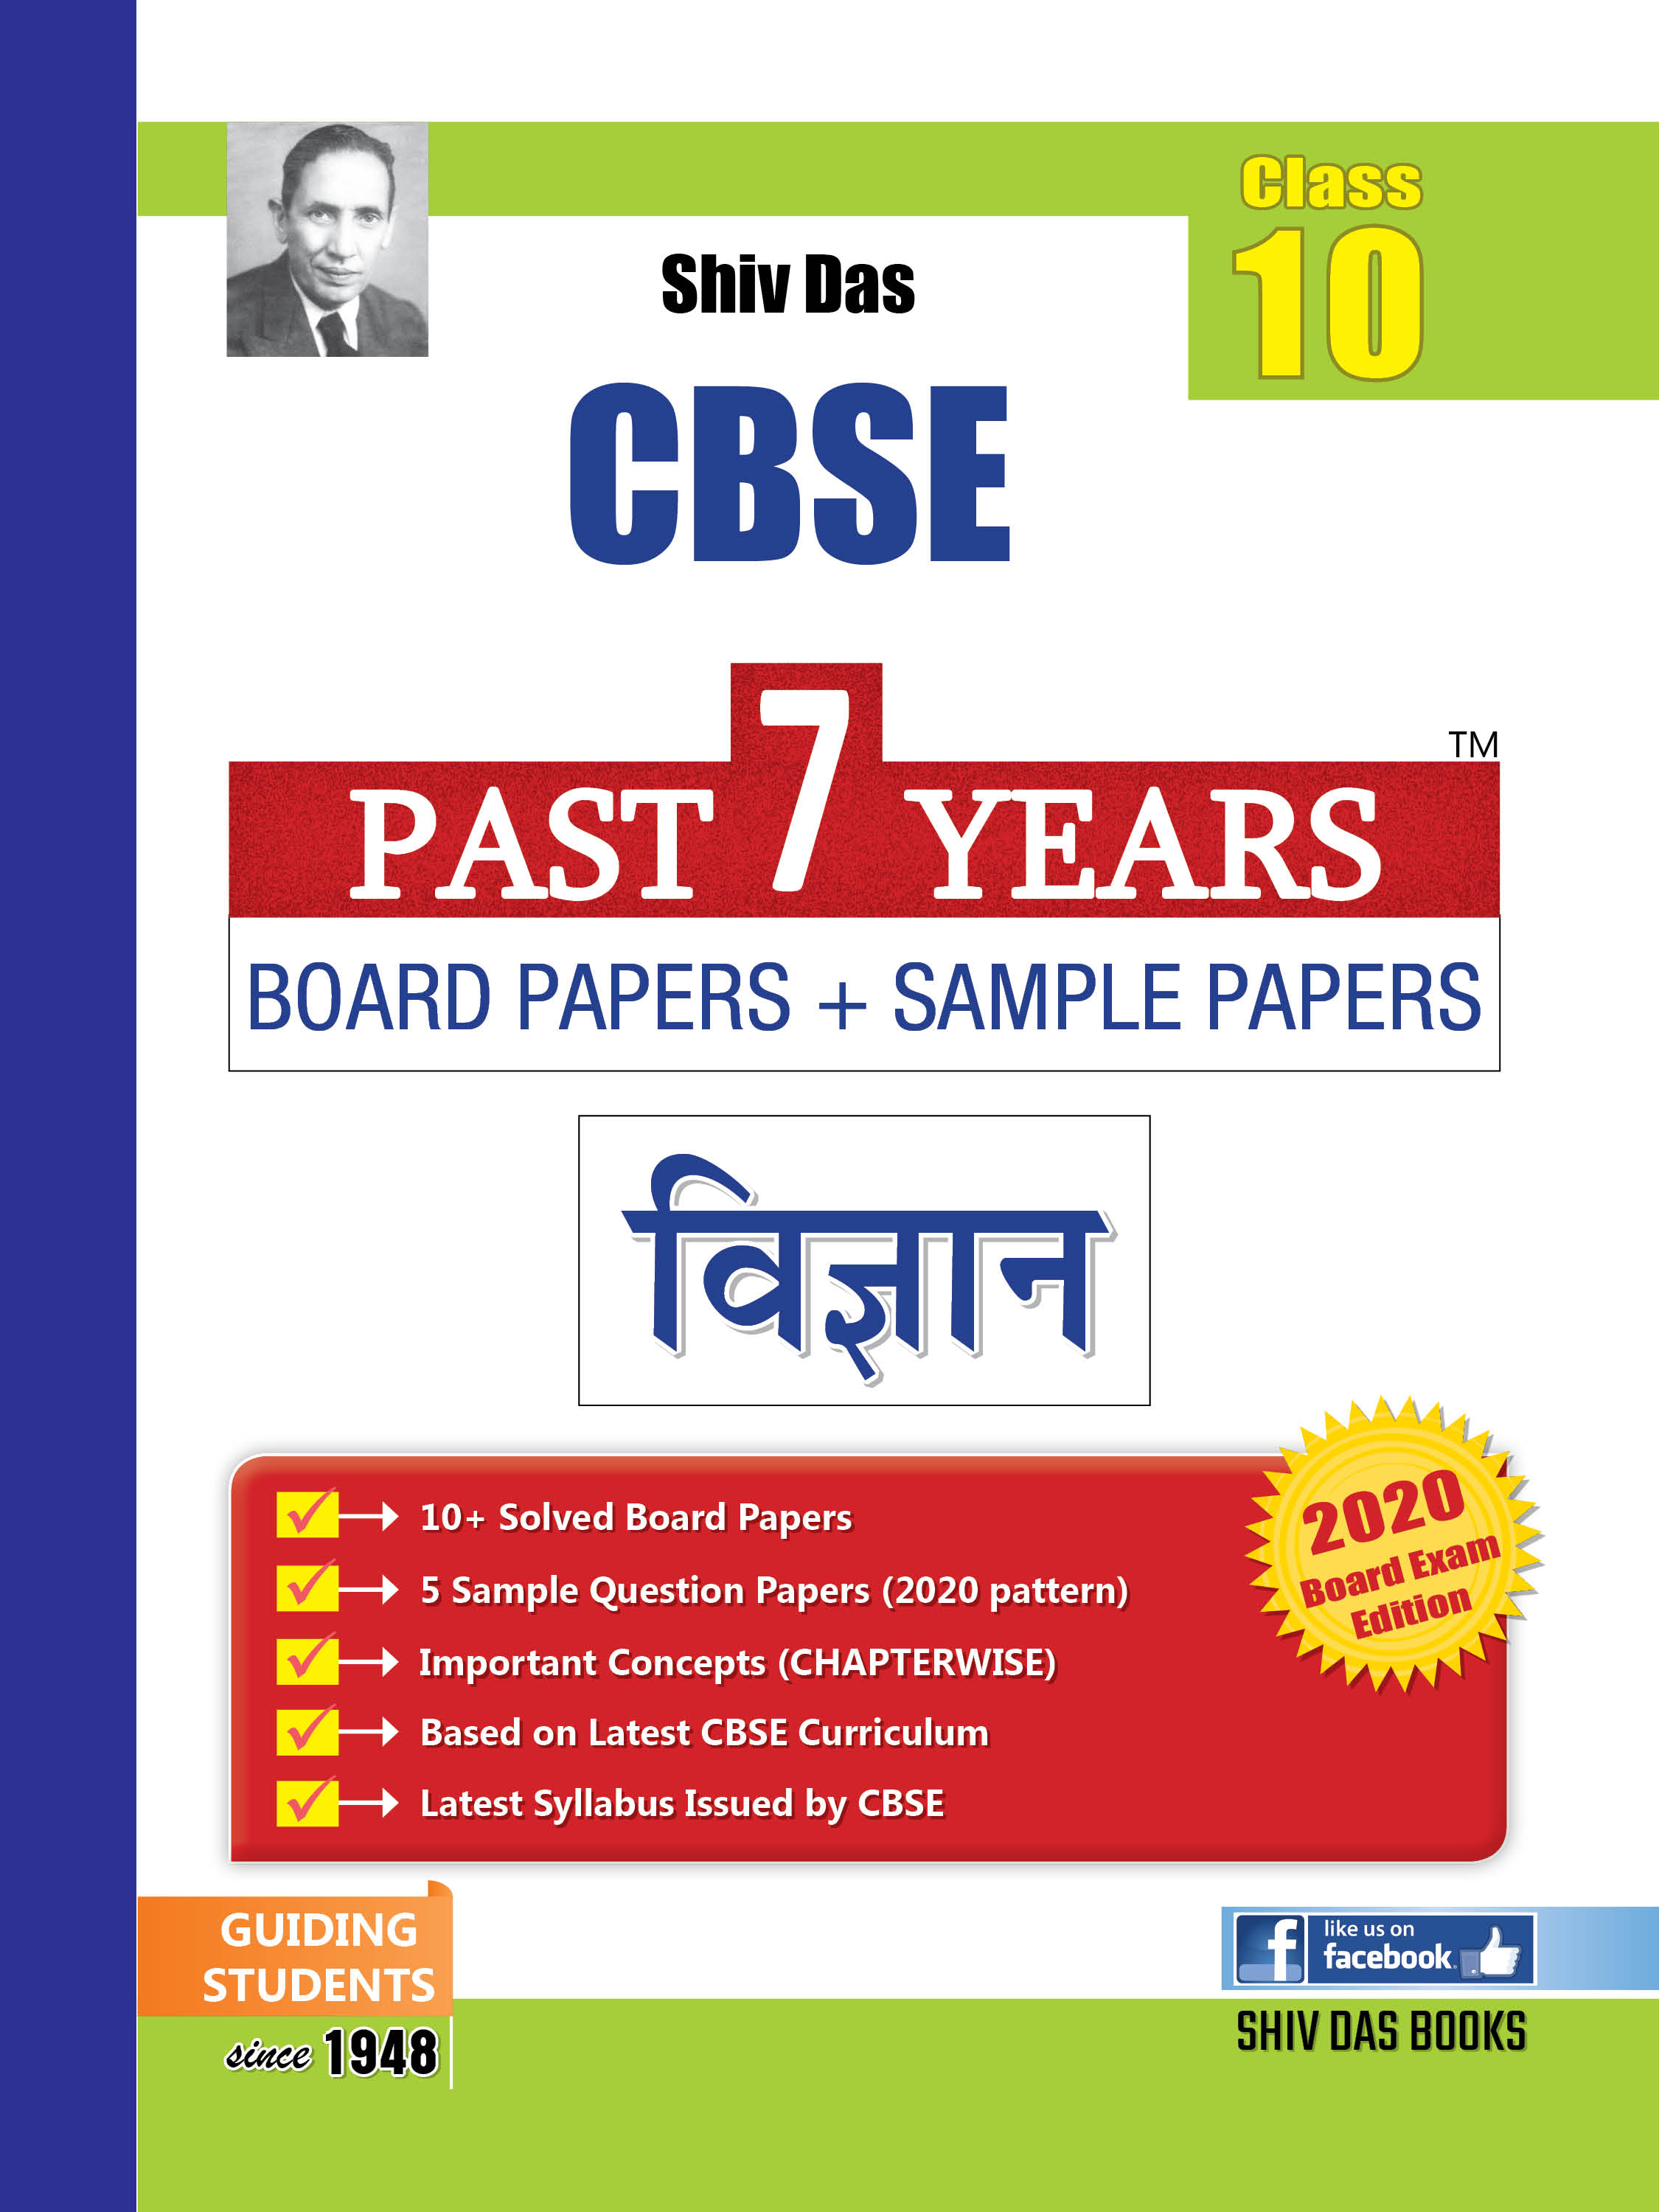 CBSE Past 7 Years Solved Board Papers+Sample Papers for Class 10 Vigyan (2020 Board Exam Edition)